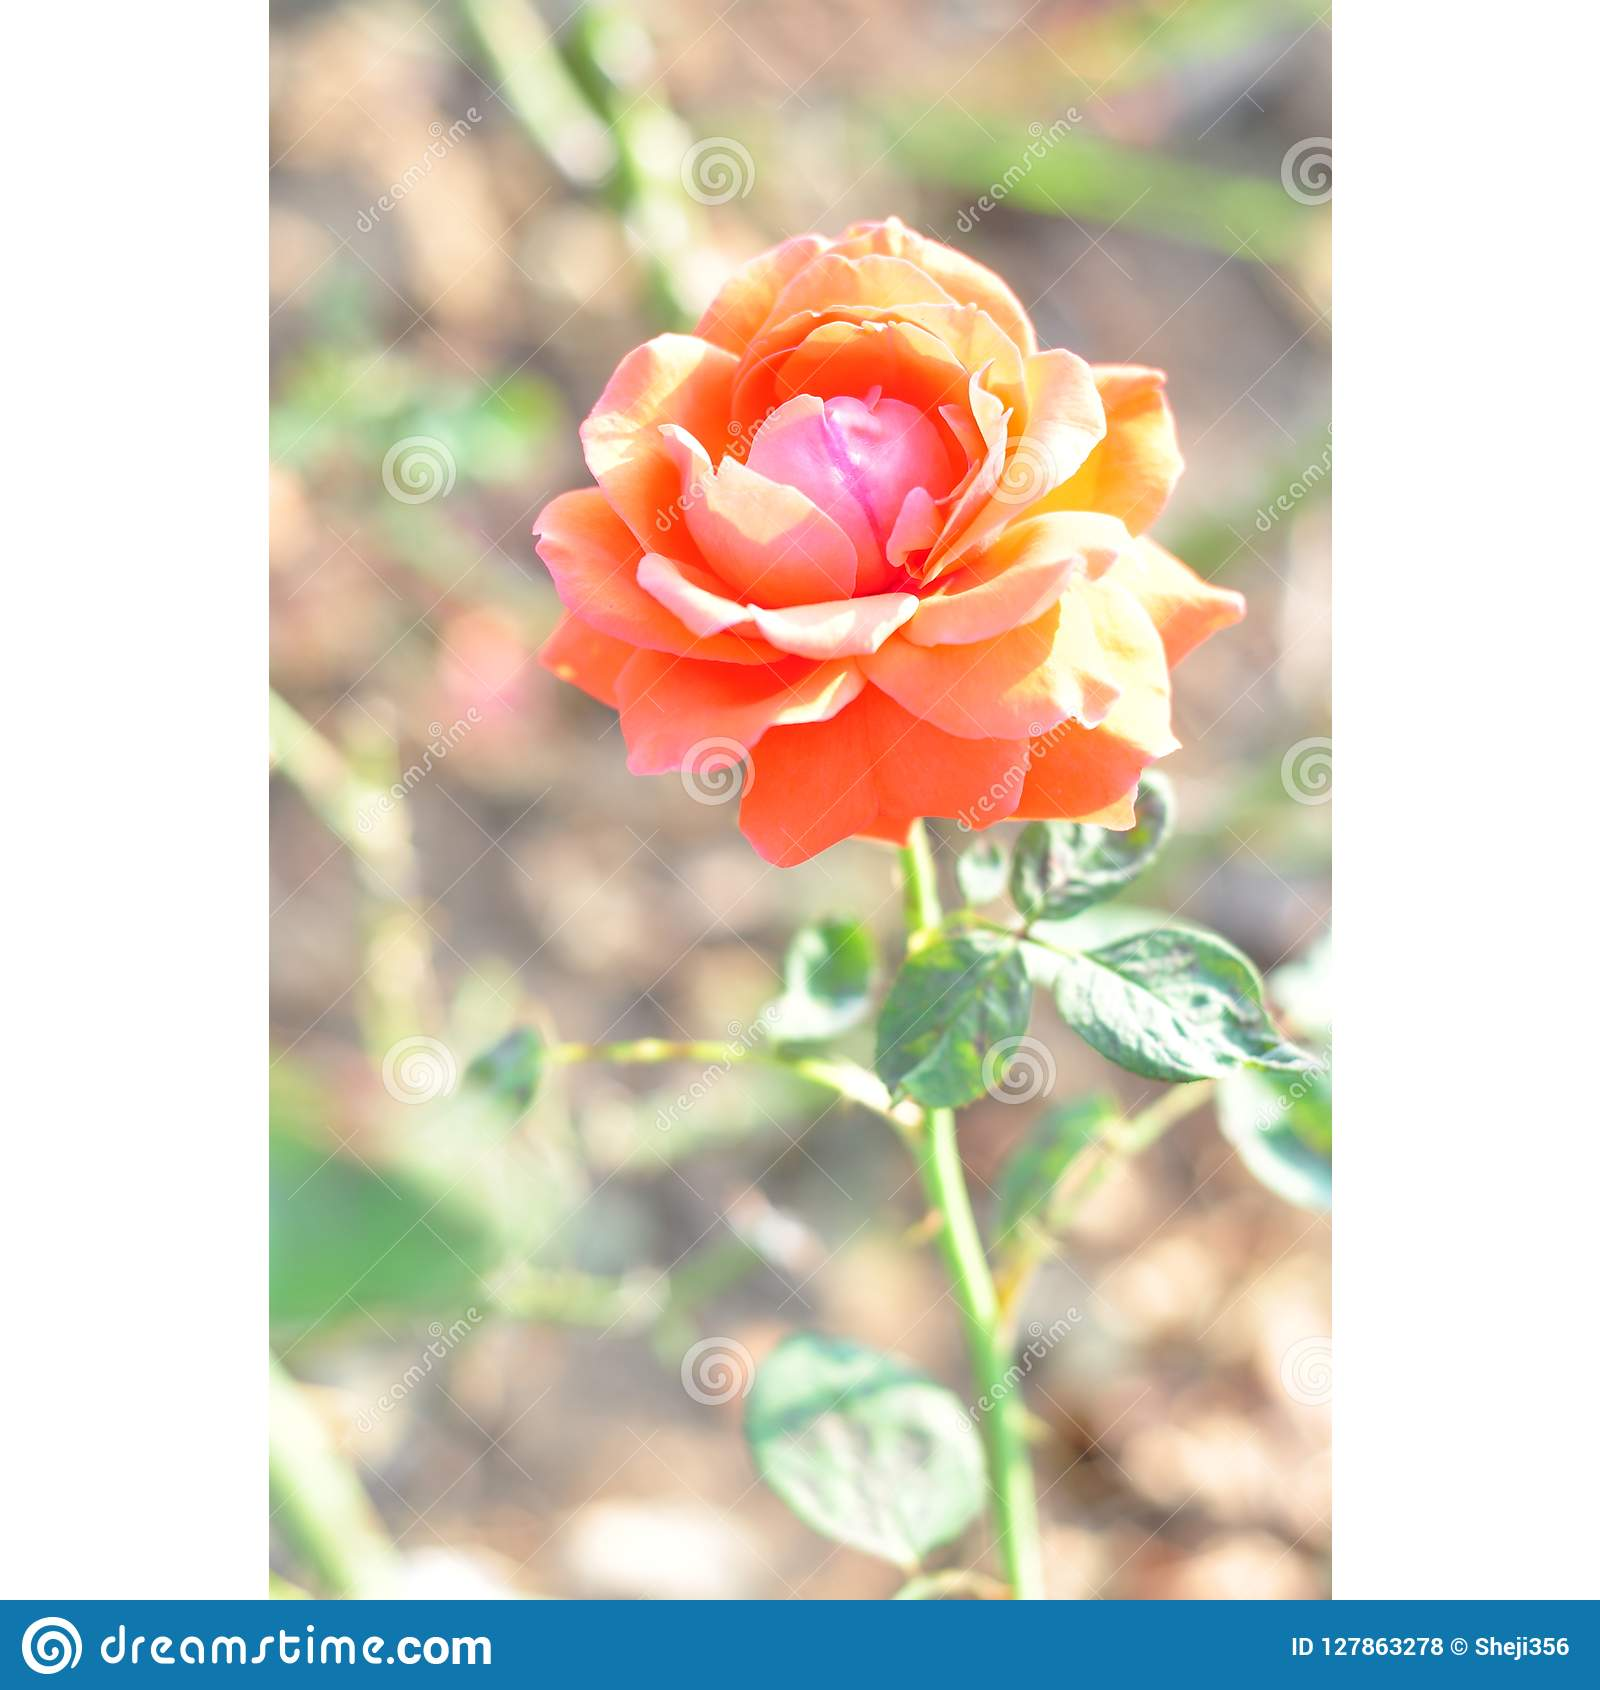 Beautiful rose petals are blooming, HD red flowers pictures